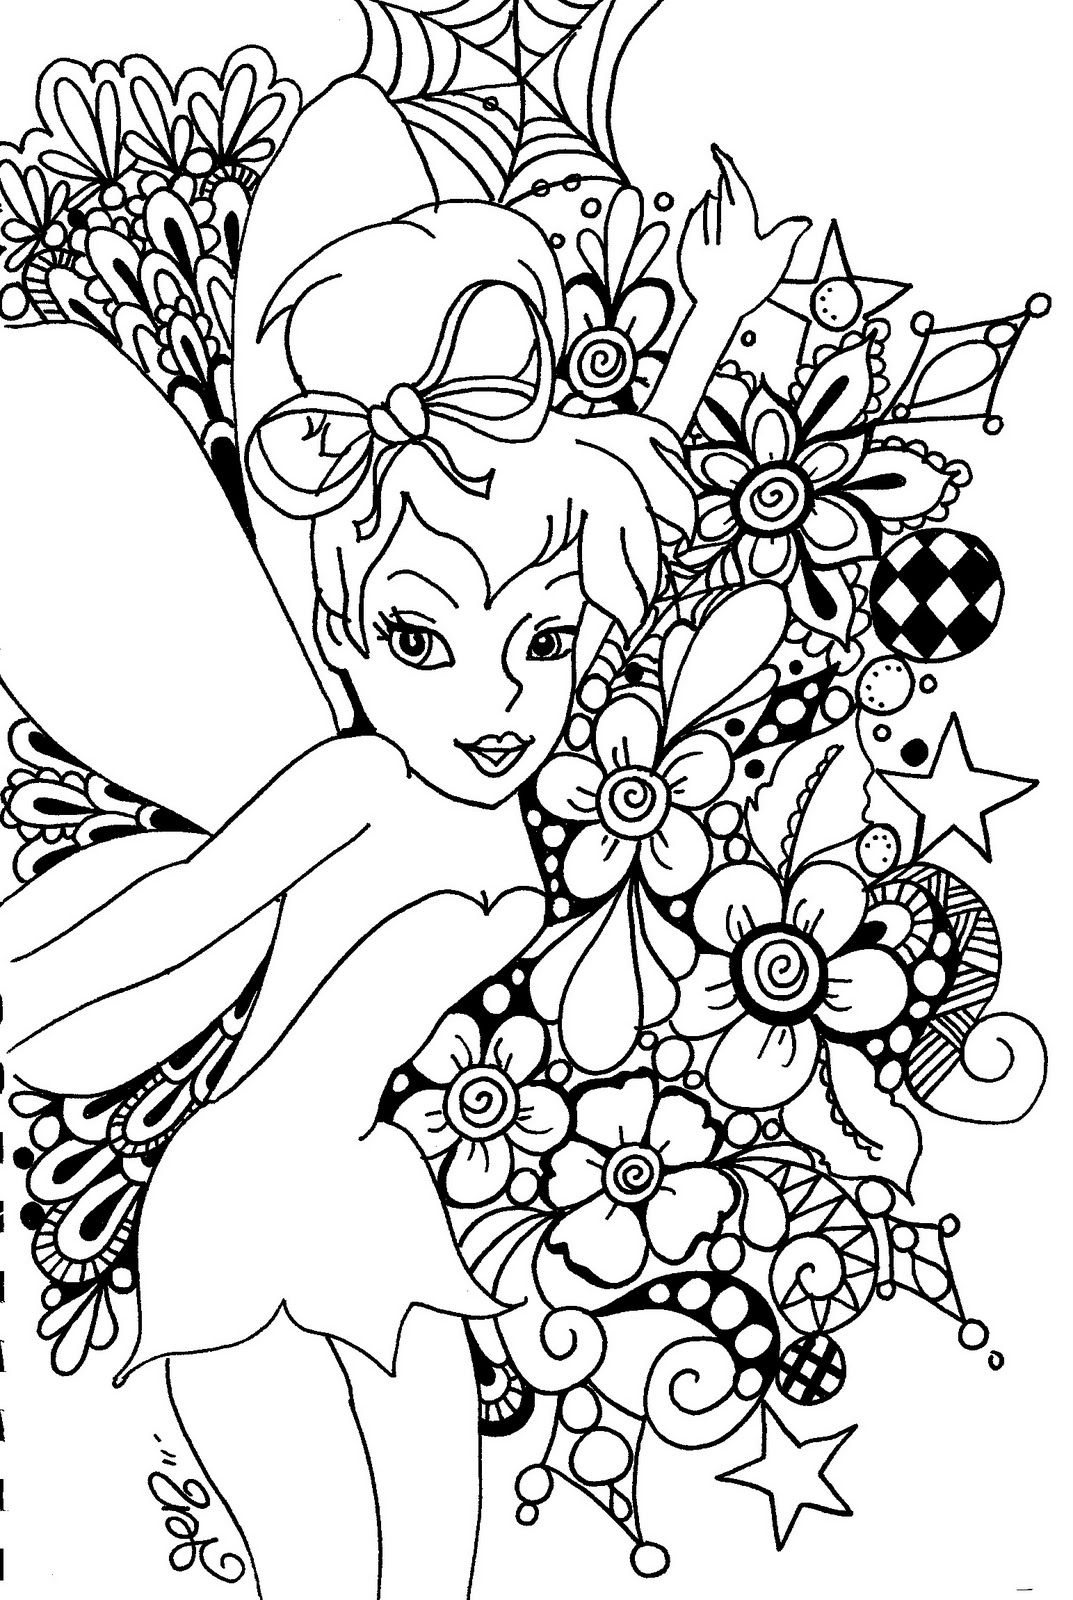 Fairy Coloring Pages Tinkerbell To Print And Color Coloring